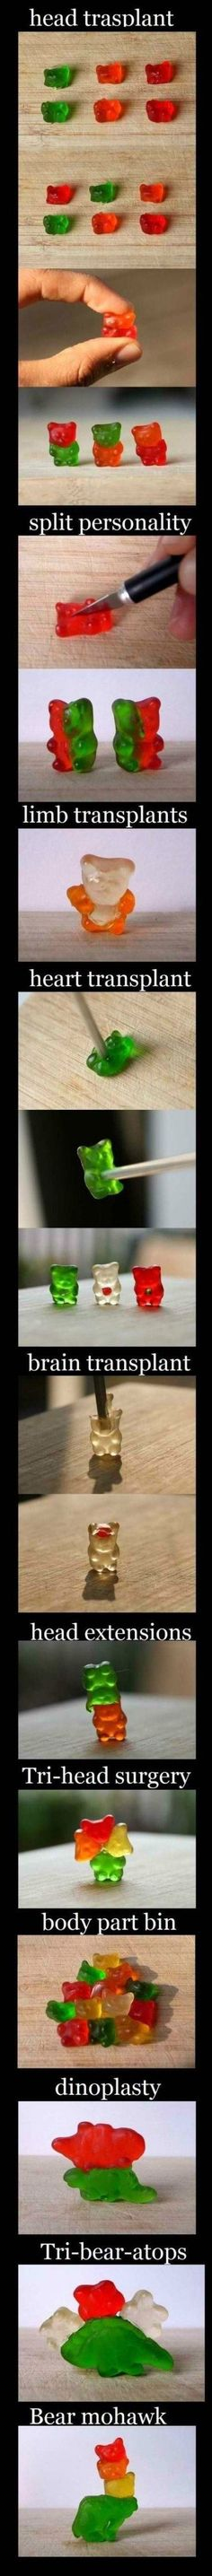 Things to do with gummy bears.....apparently i am only an amature